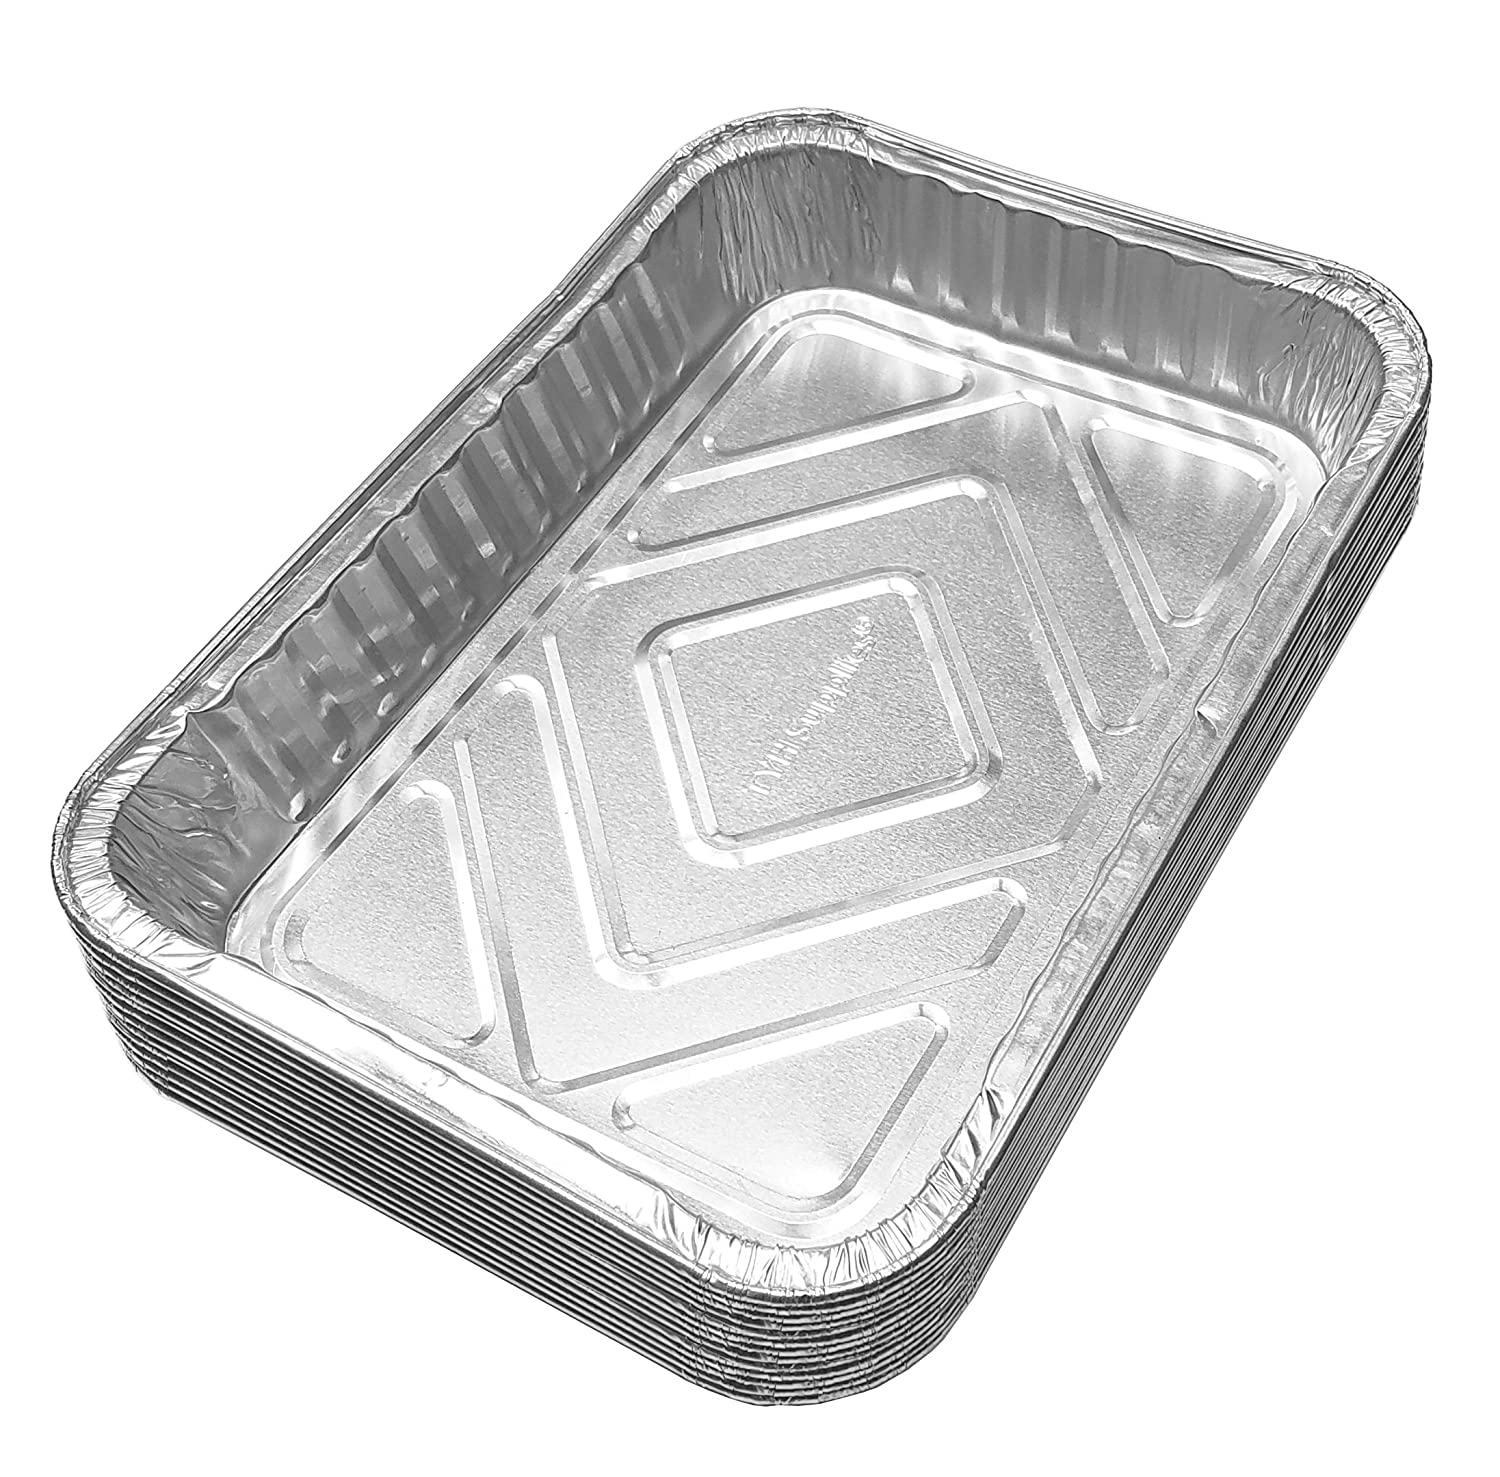 TYH Supplies Aluminum Foil BBQ Grease Drip Pans Compatible with Weber Grills Q Spirit Spirit II 20-Pack Genesis II LX 200 and 300 Series Gas Grill 7.5 x 5 Pulse